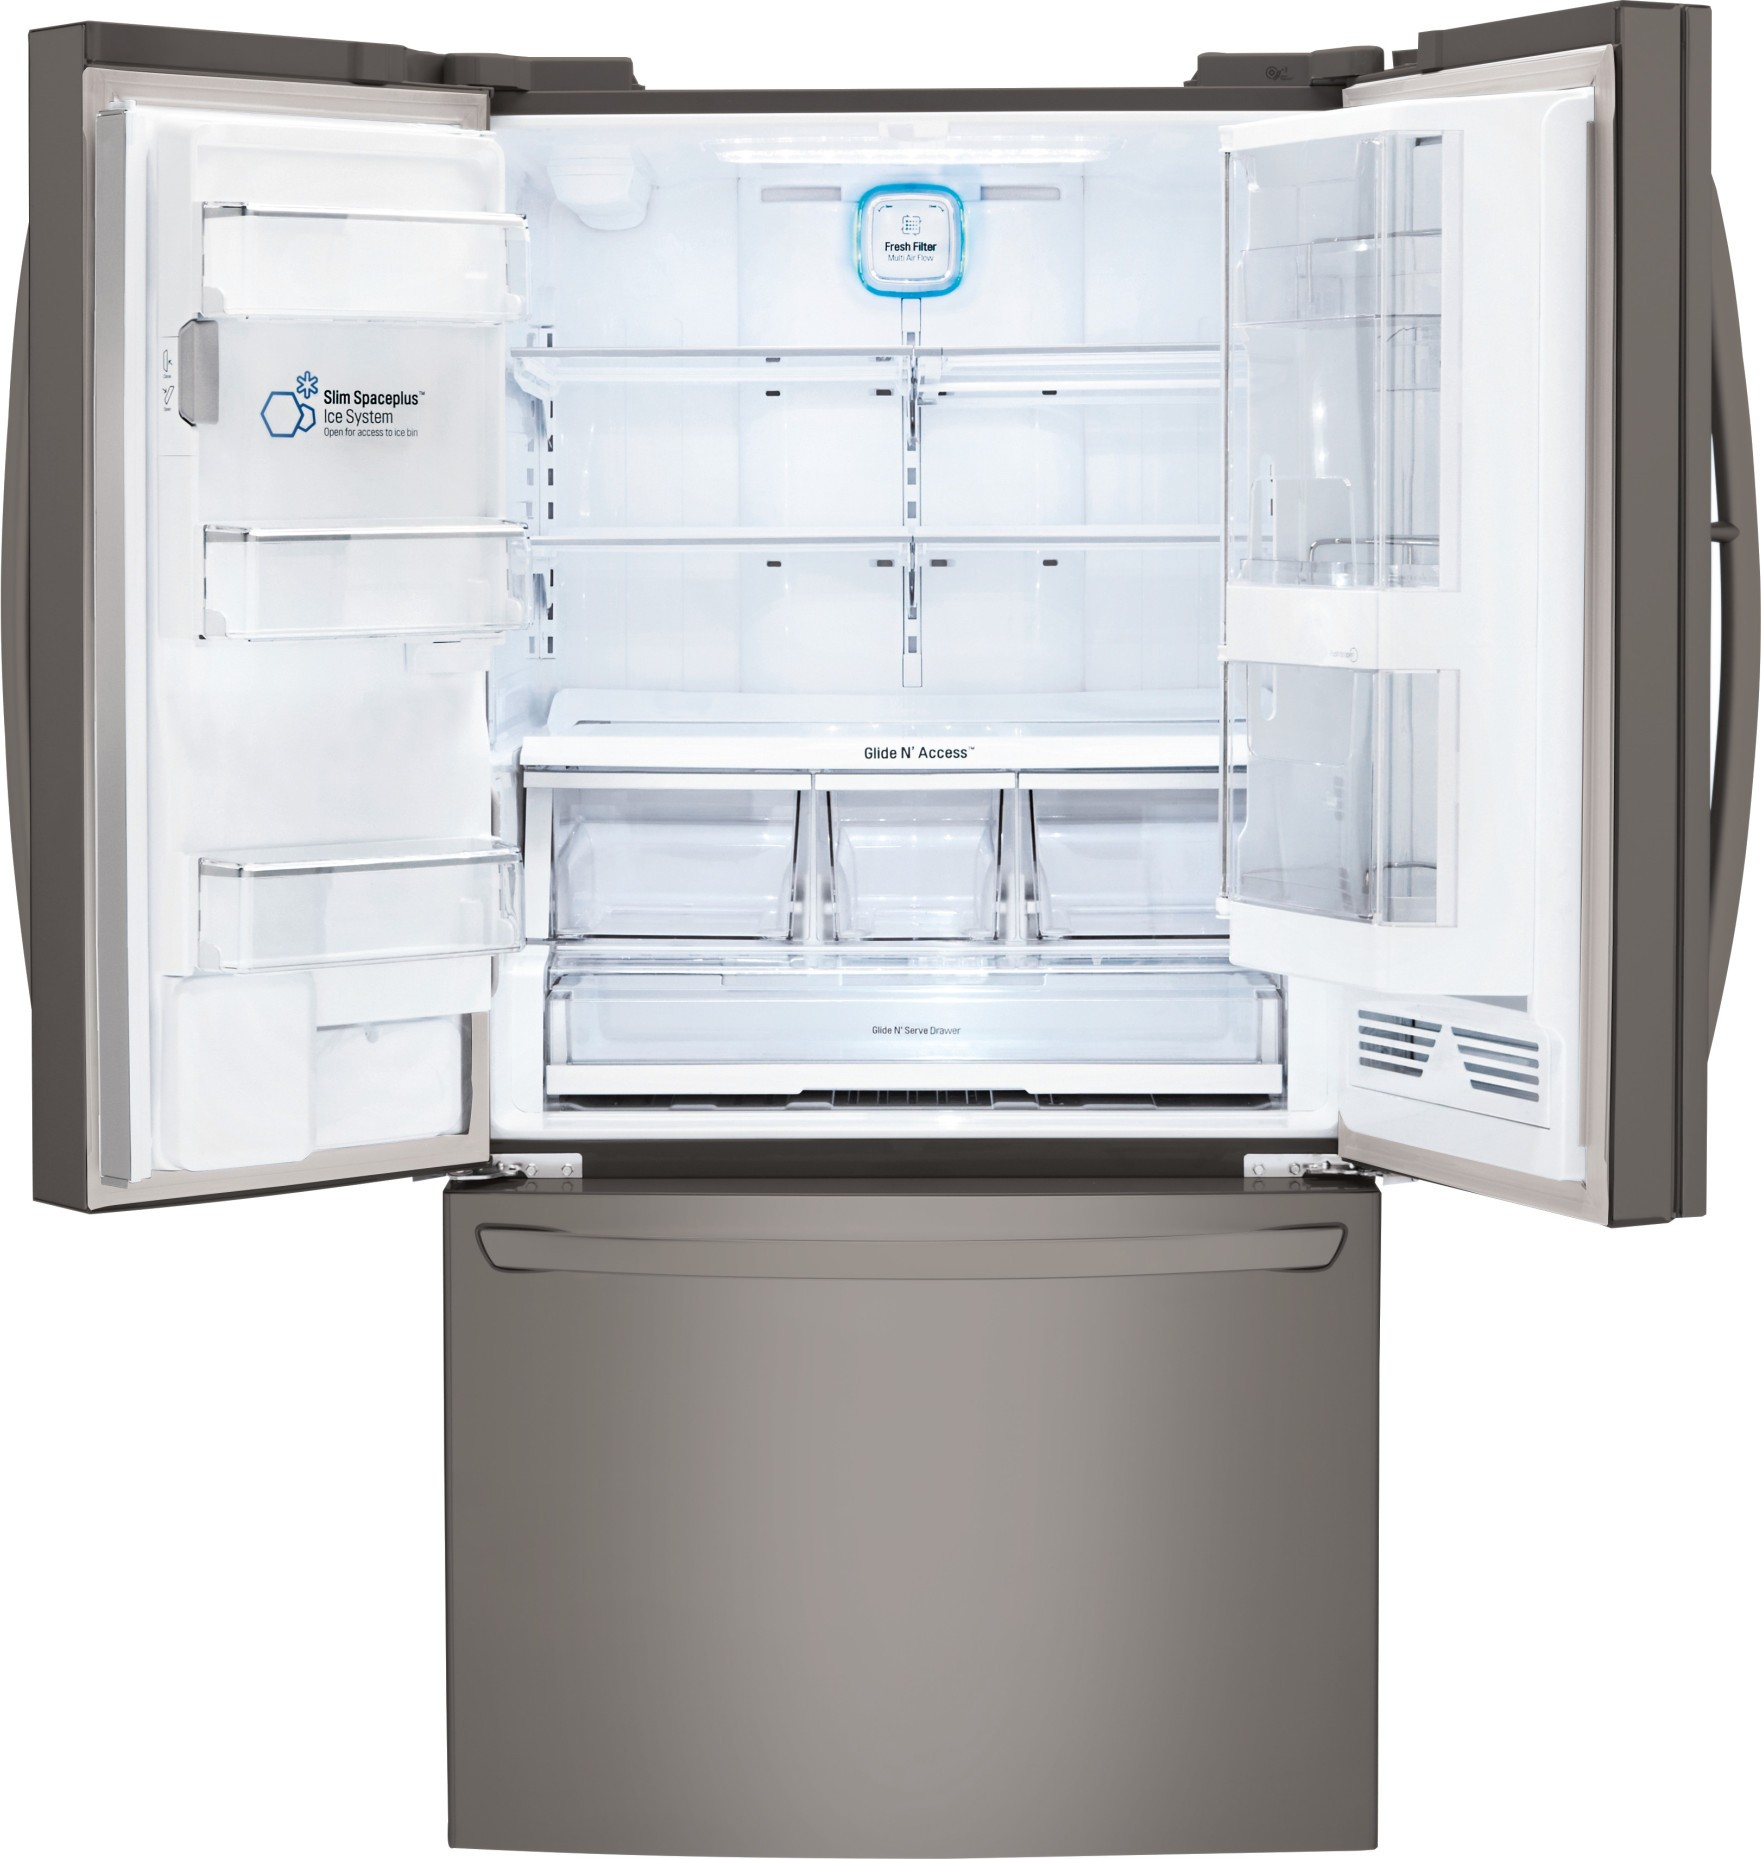 Lfxs30766d lg 30 cu ft super capacity french door refrigerator main feature feature feature feature rubansaba